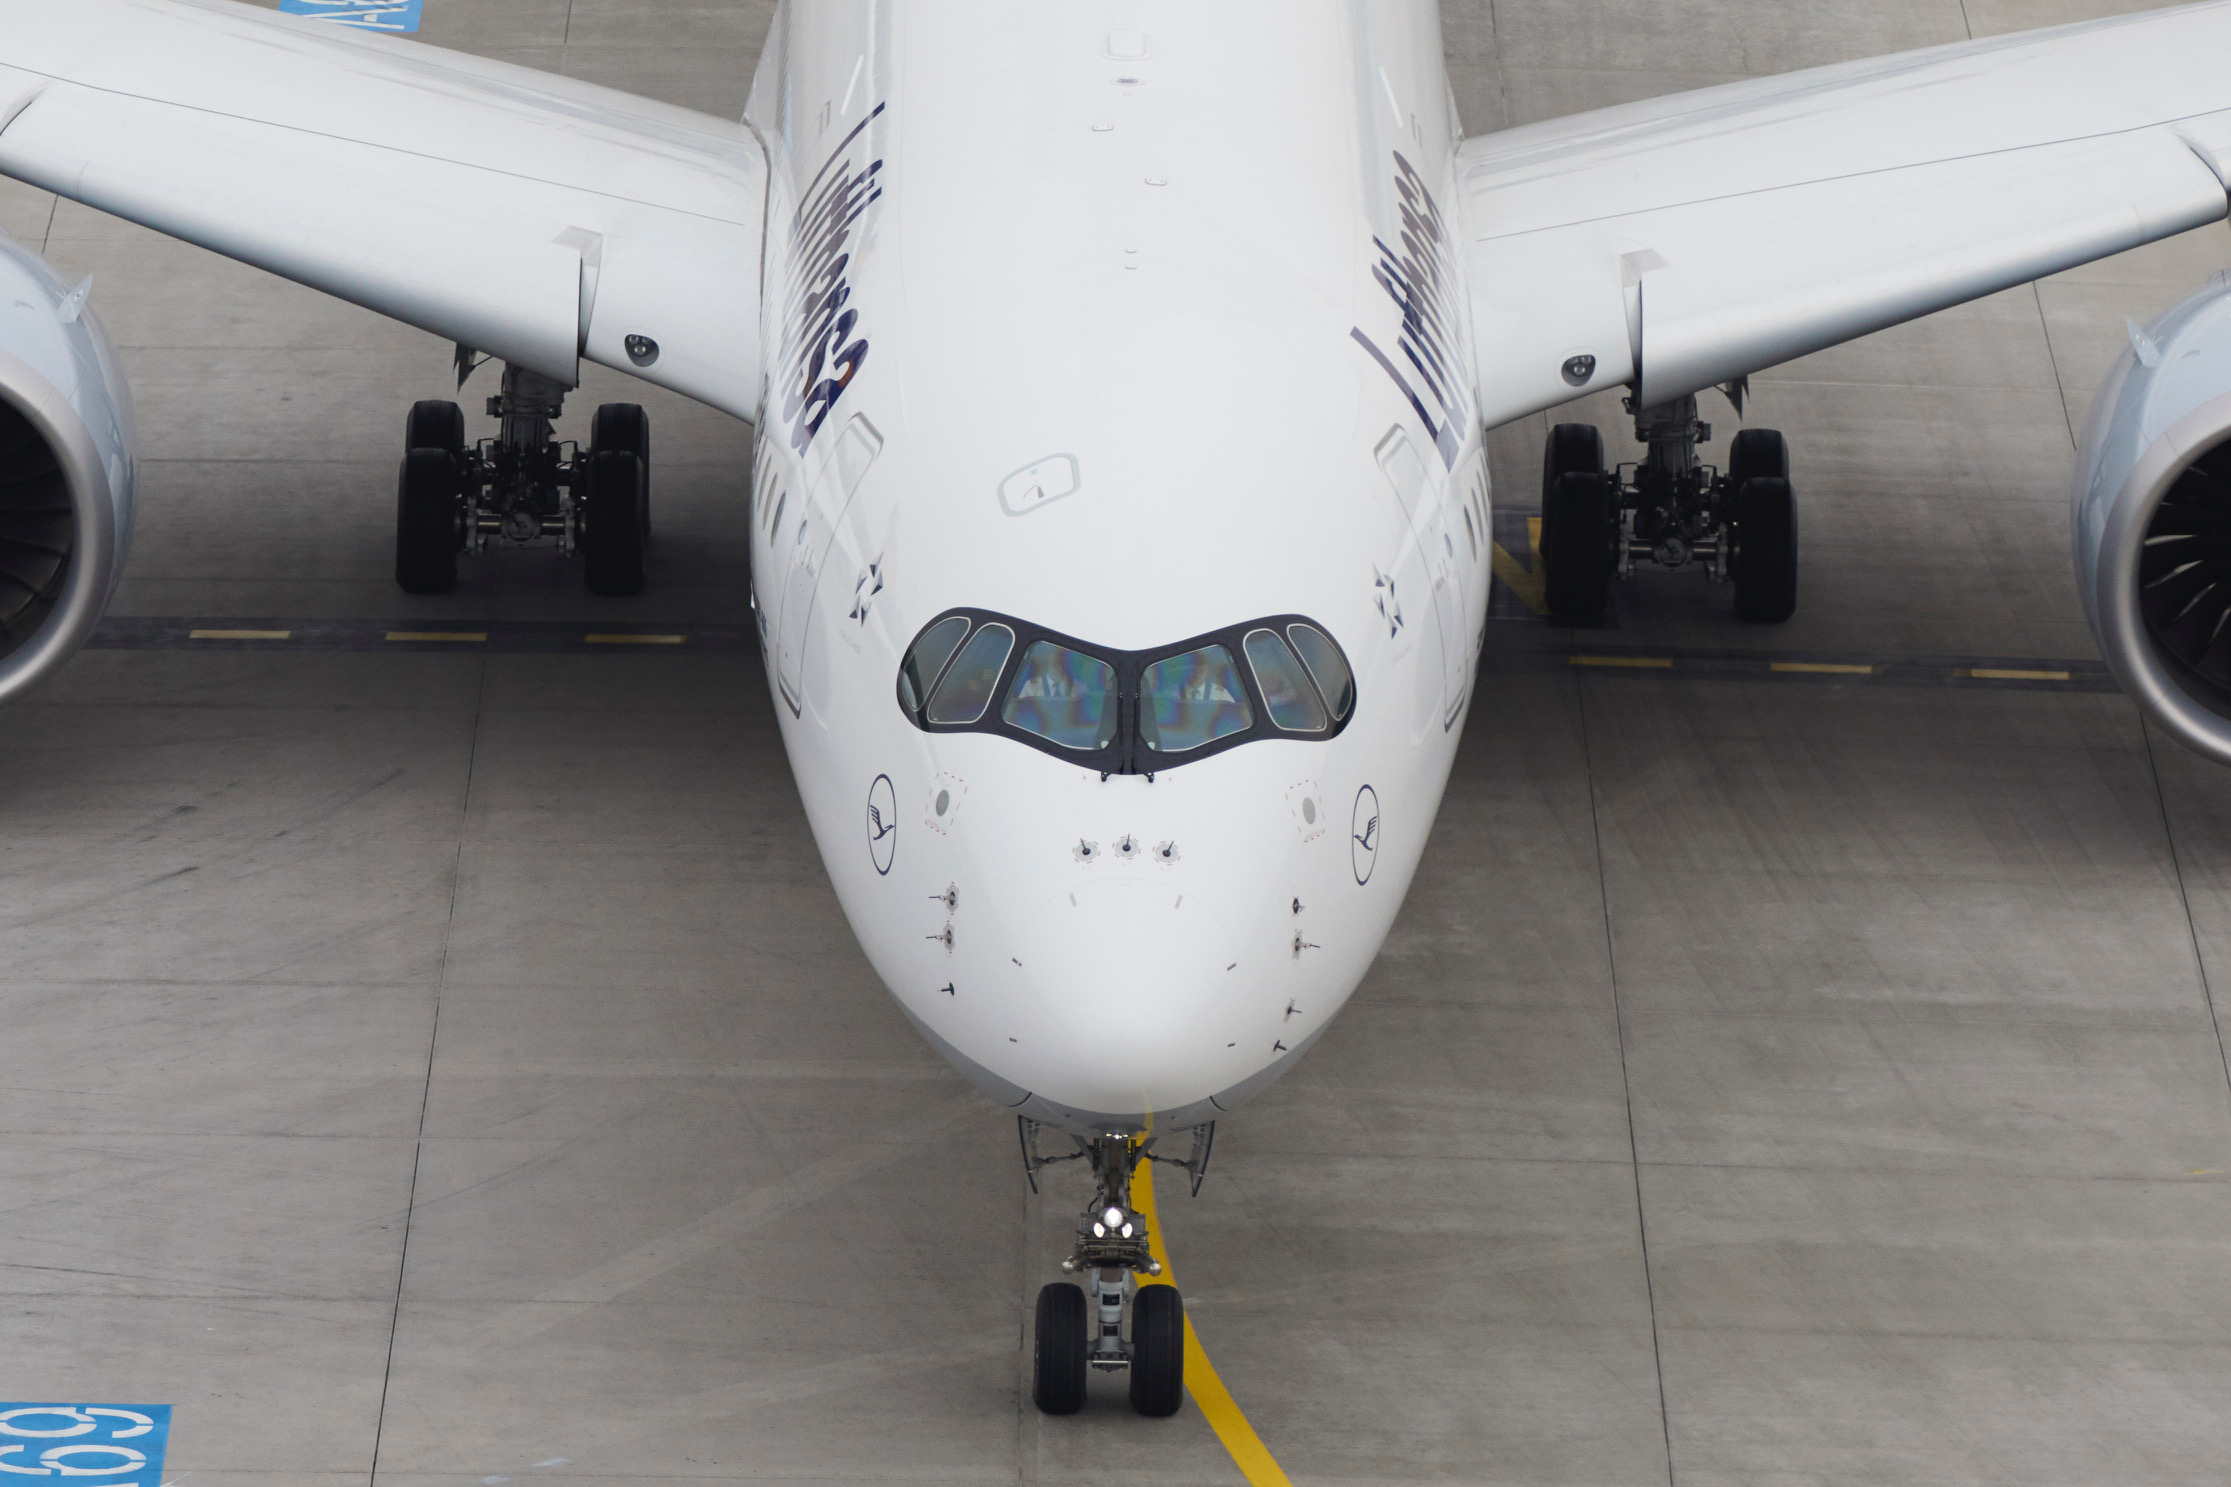 Lufthansa Group continues to invest in fleet modernization